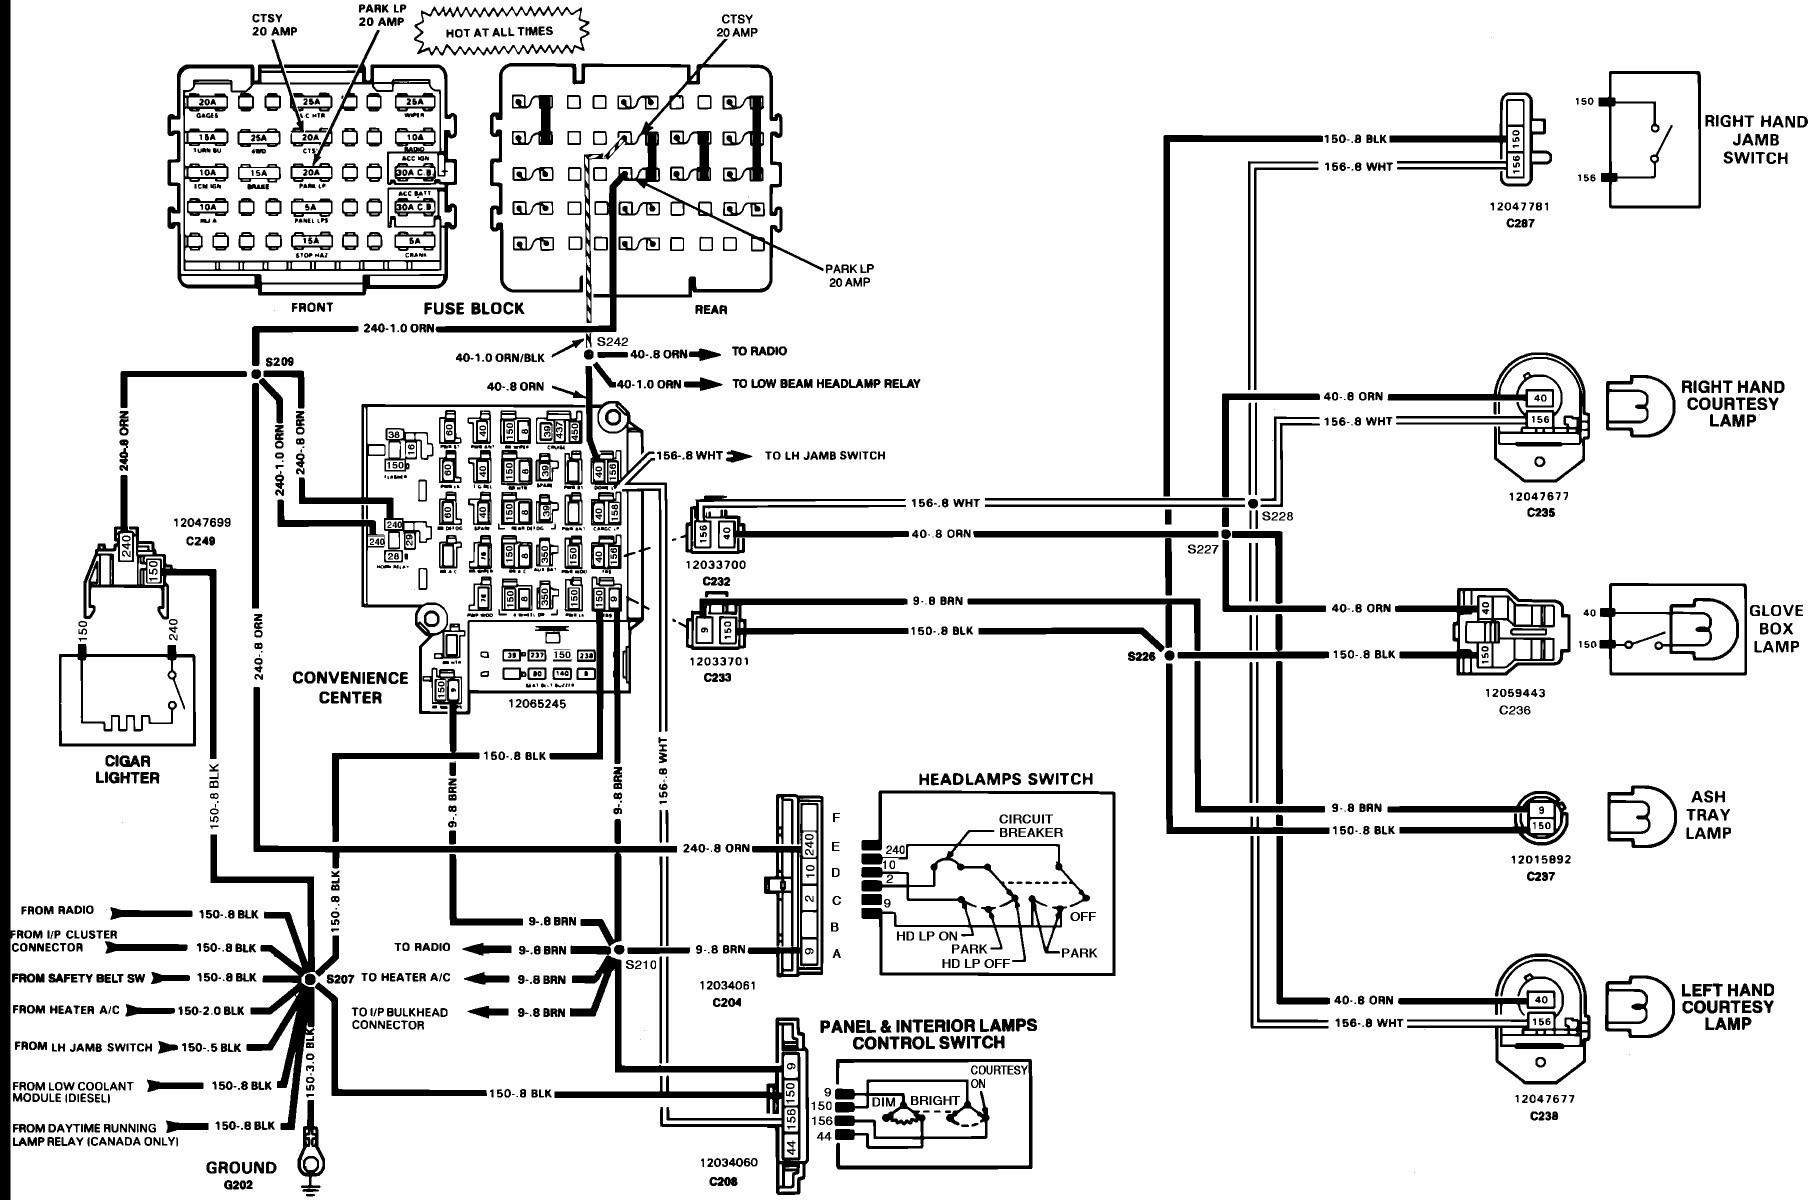 1993 nissan pathfinder fuel wiring diagram wiring library